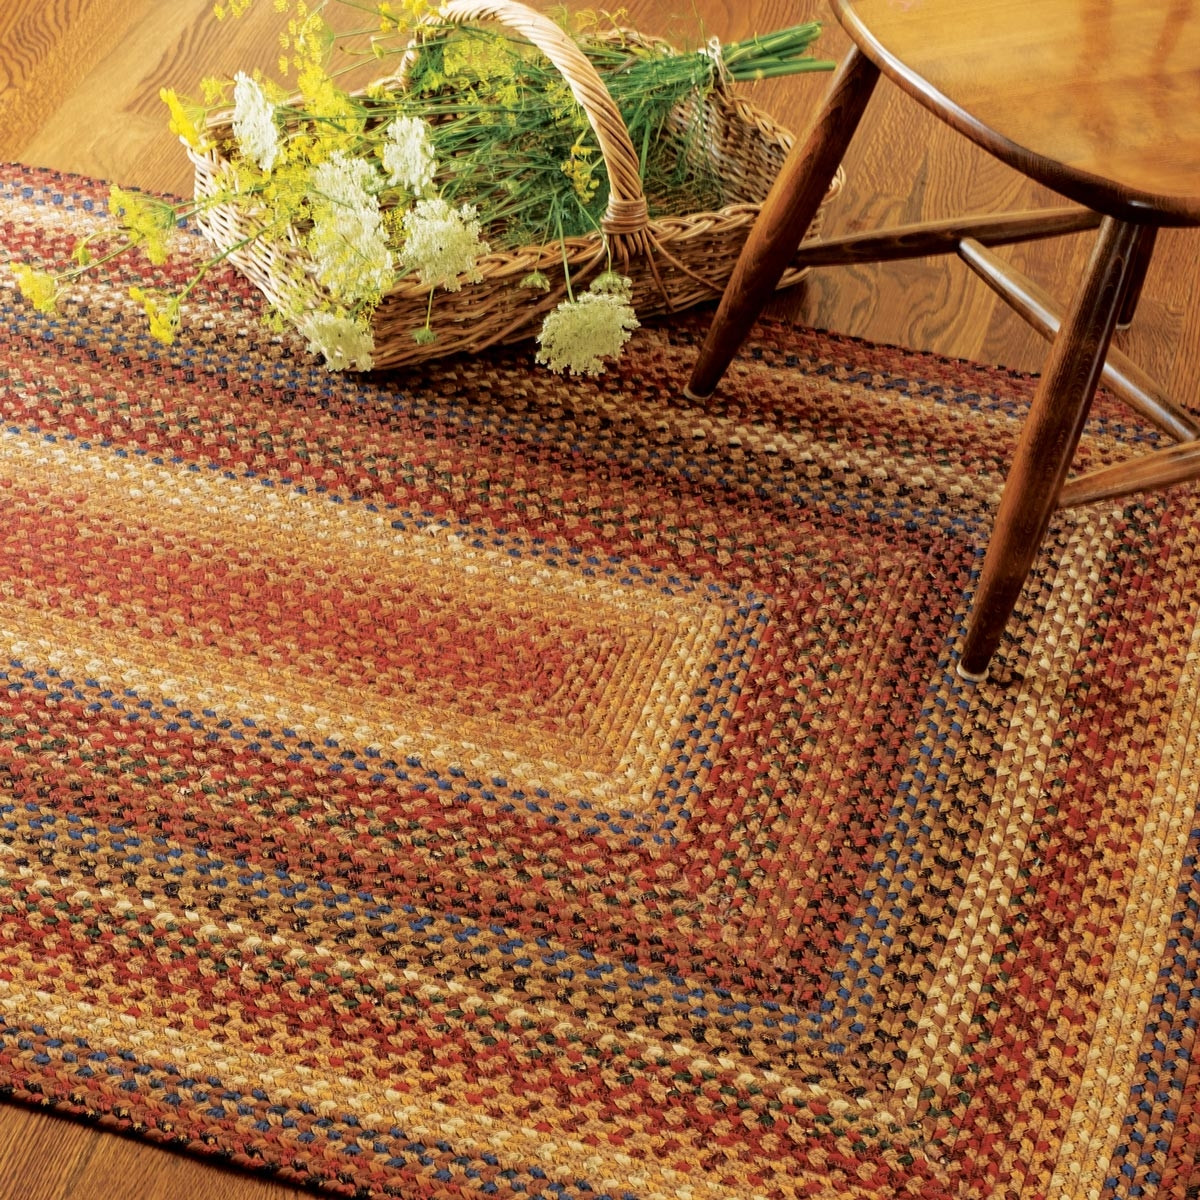 Buy Biscotti Multi Color Cotton Braided Rugs Online